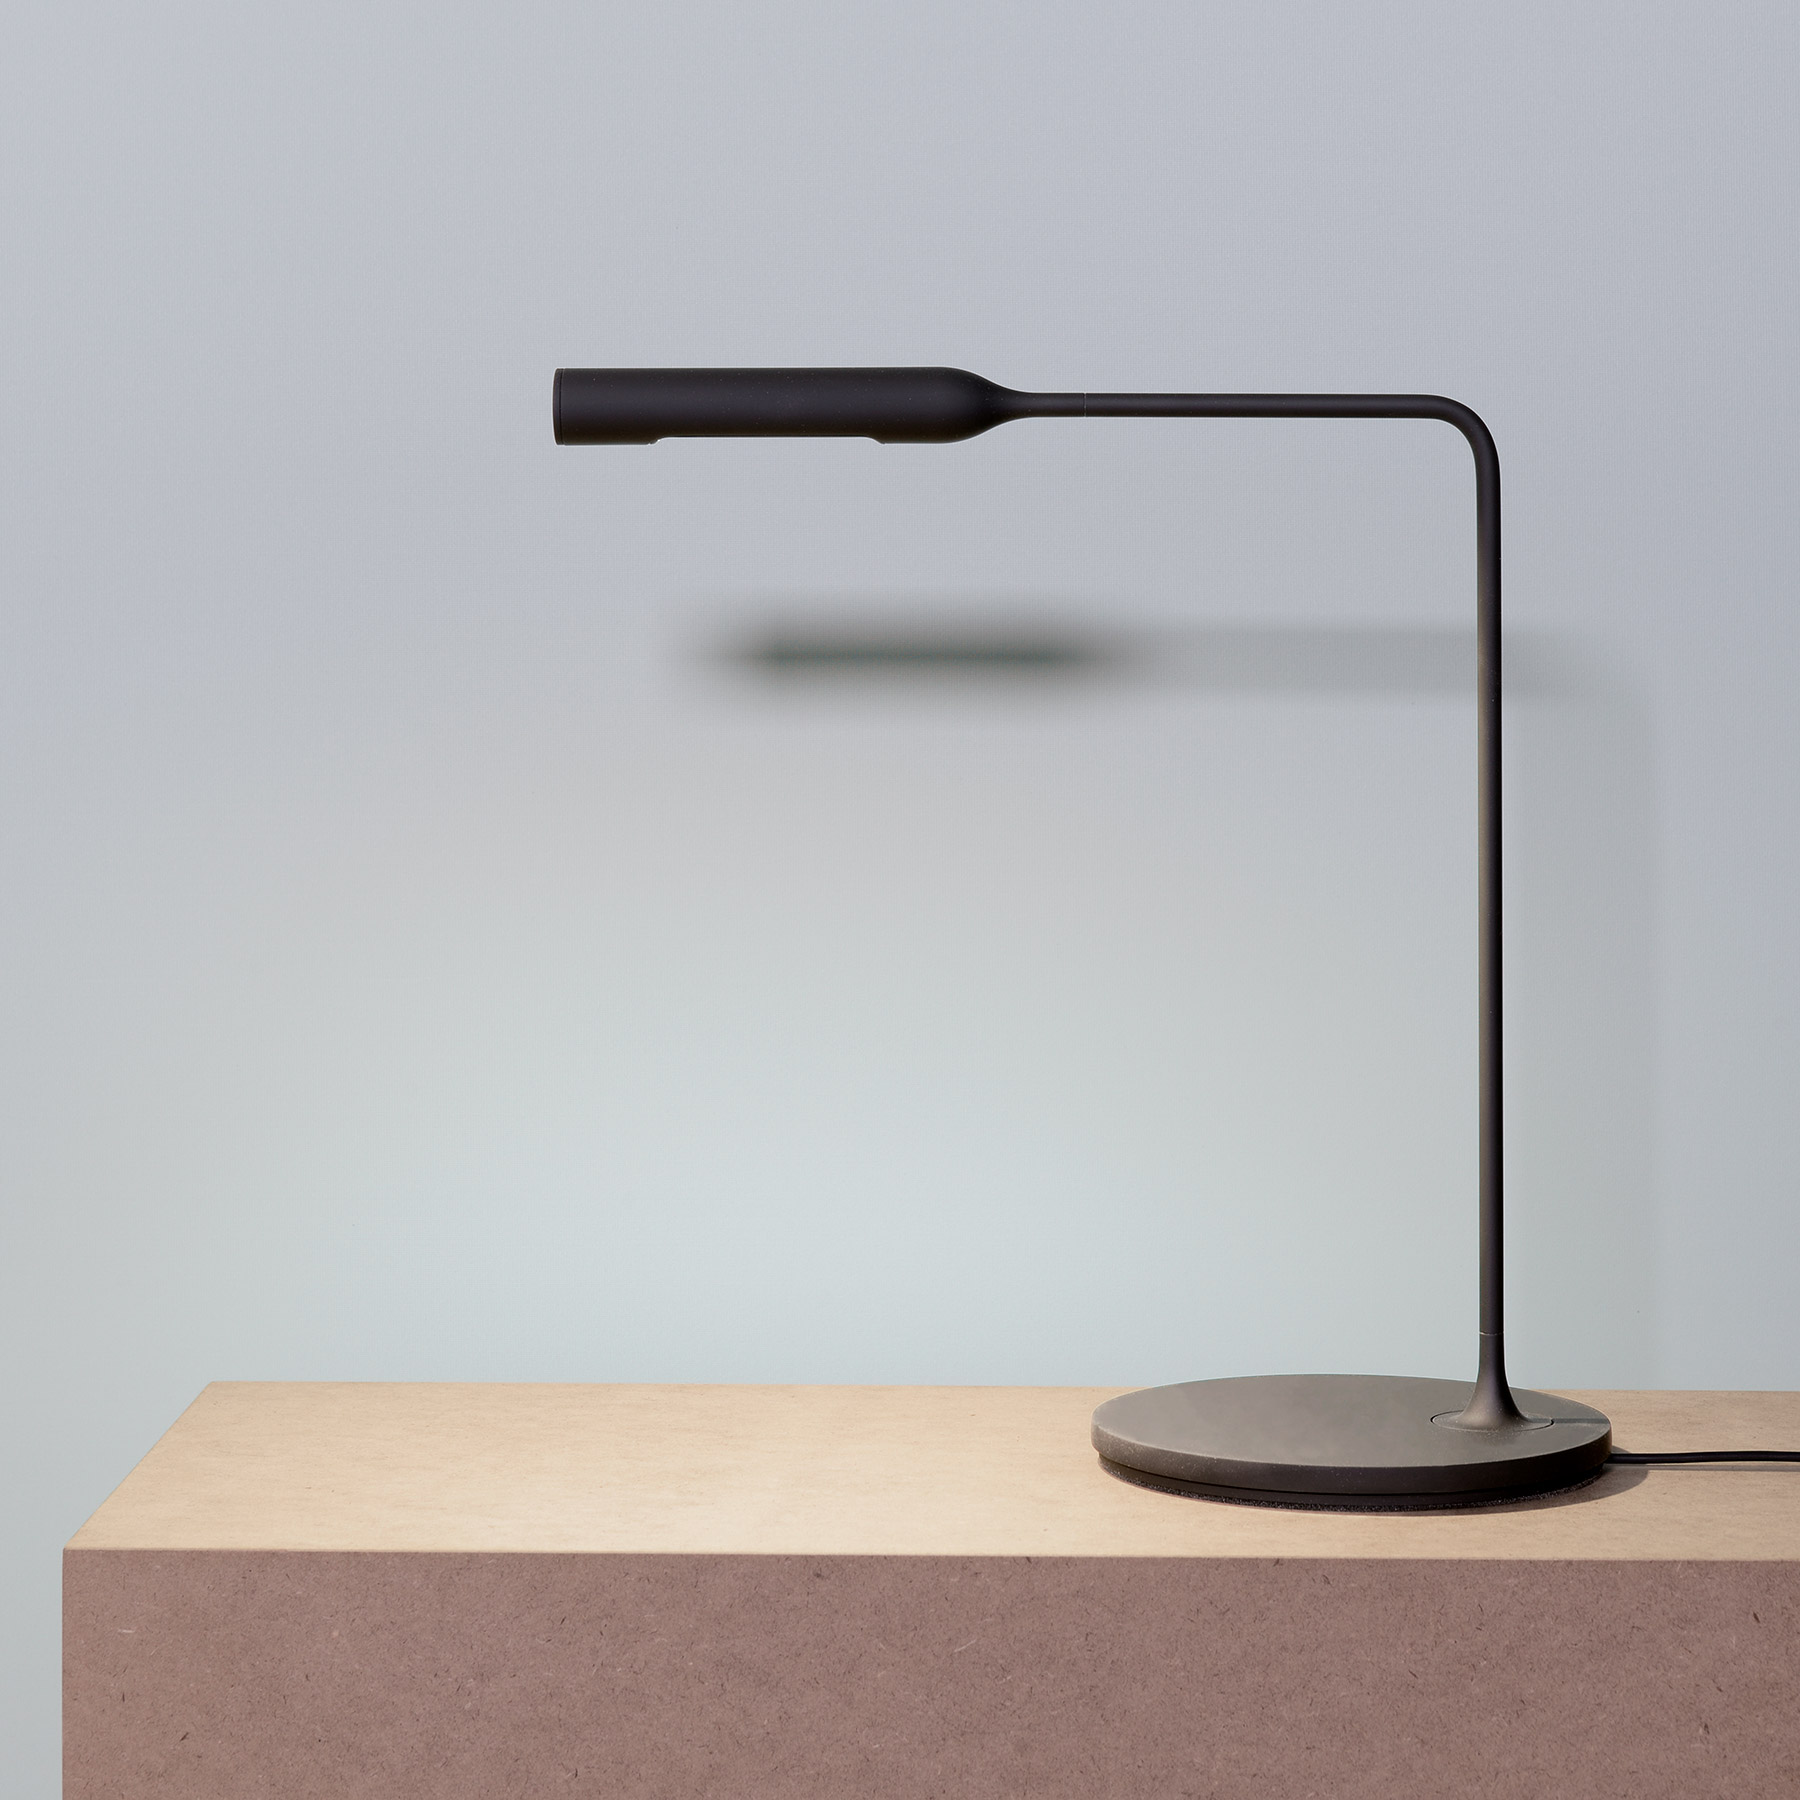 Flo black desk lamp by Lumina